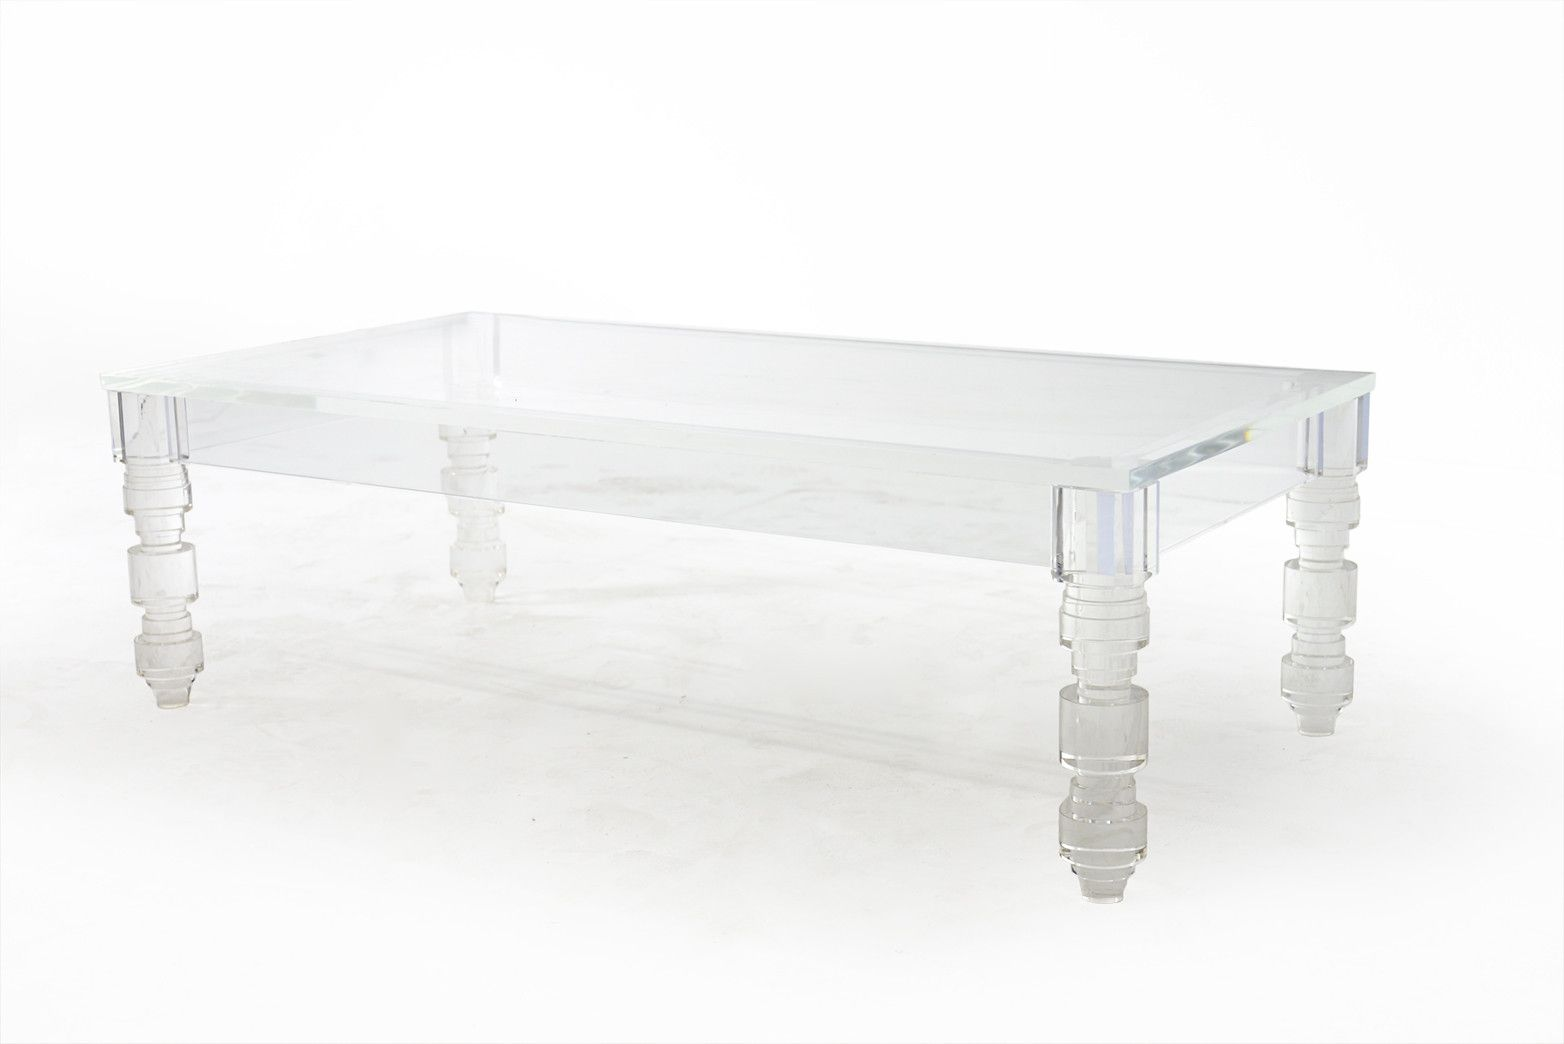 rectangular beverly hills lucite coffee table- #modshop XLKVDMR